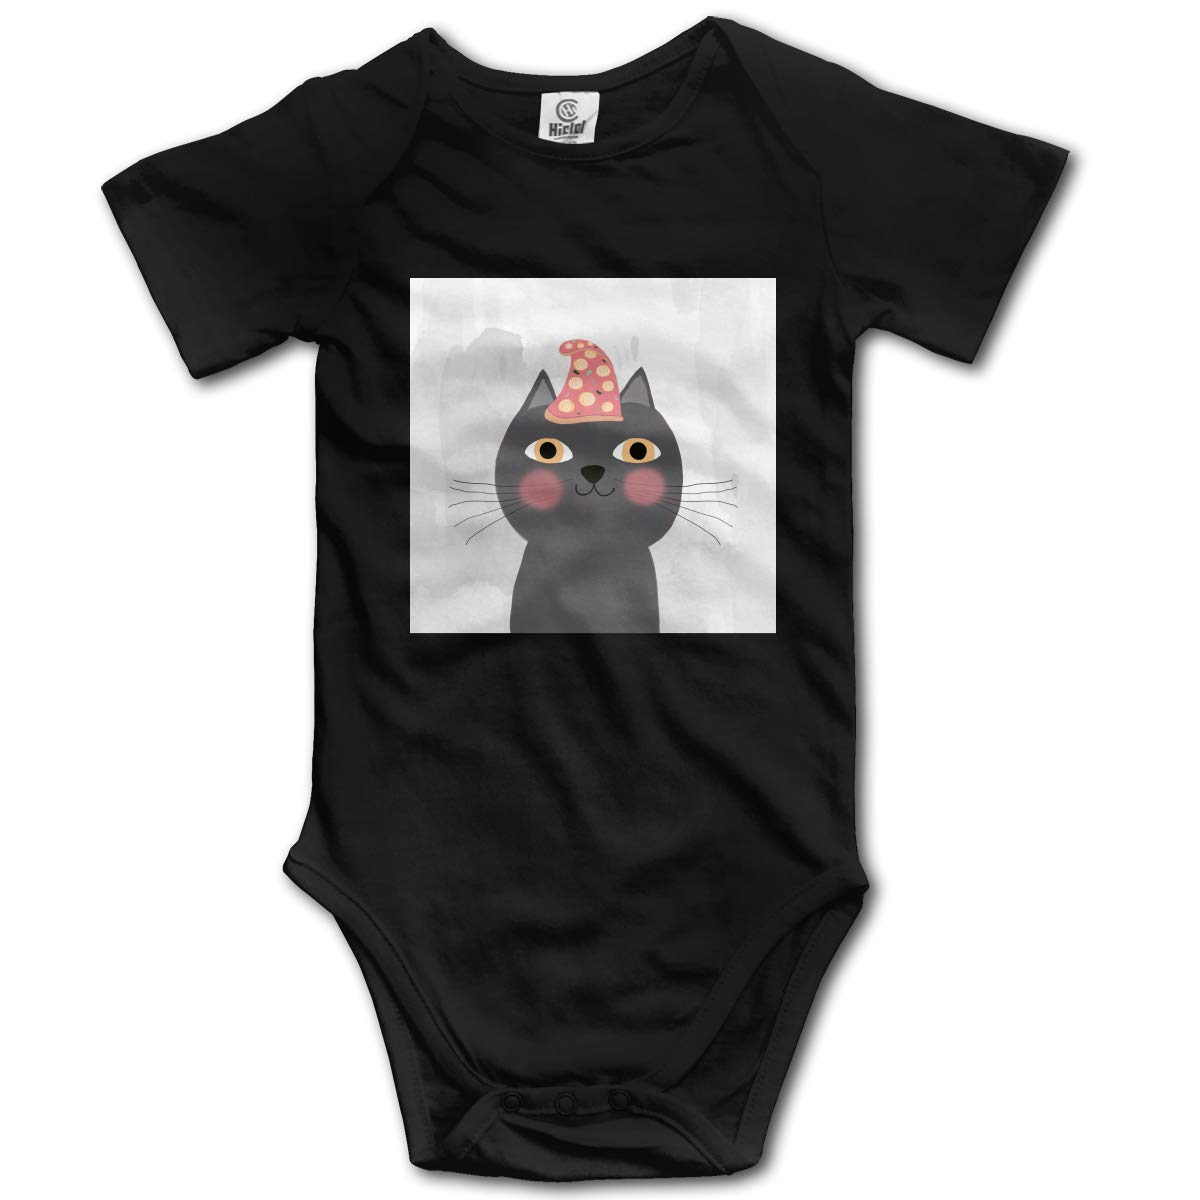 Cats Solitude It Can Be Soothing or Sorrowful Boys /& Girls Black Short Sleeve Romper Bodysuit Outfits for 0-24 Months